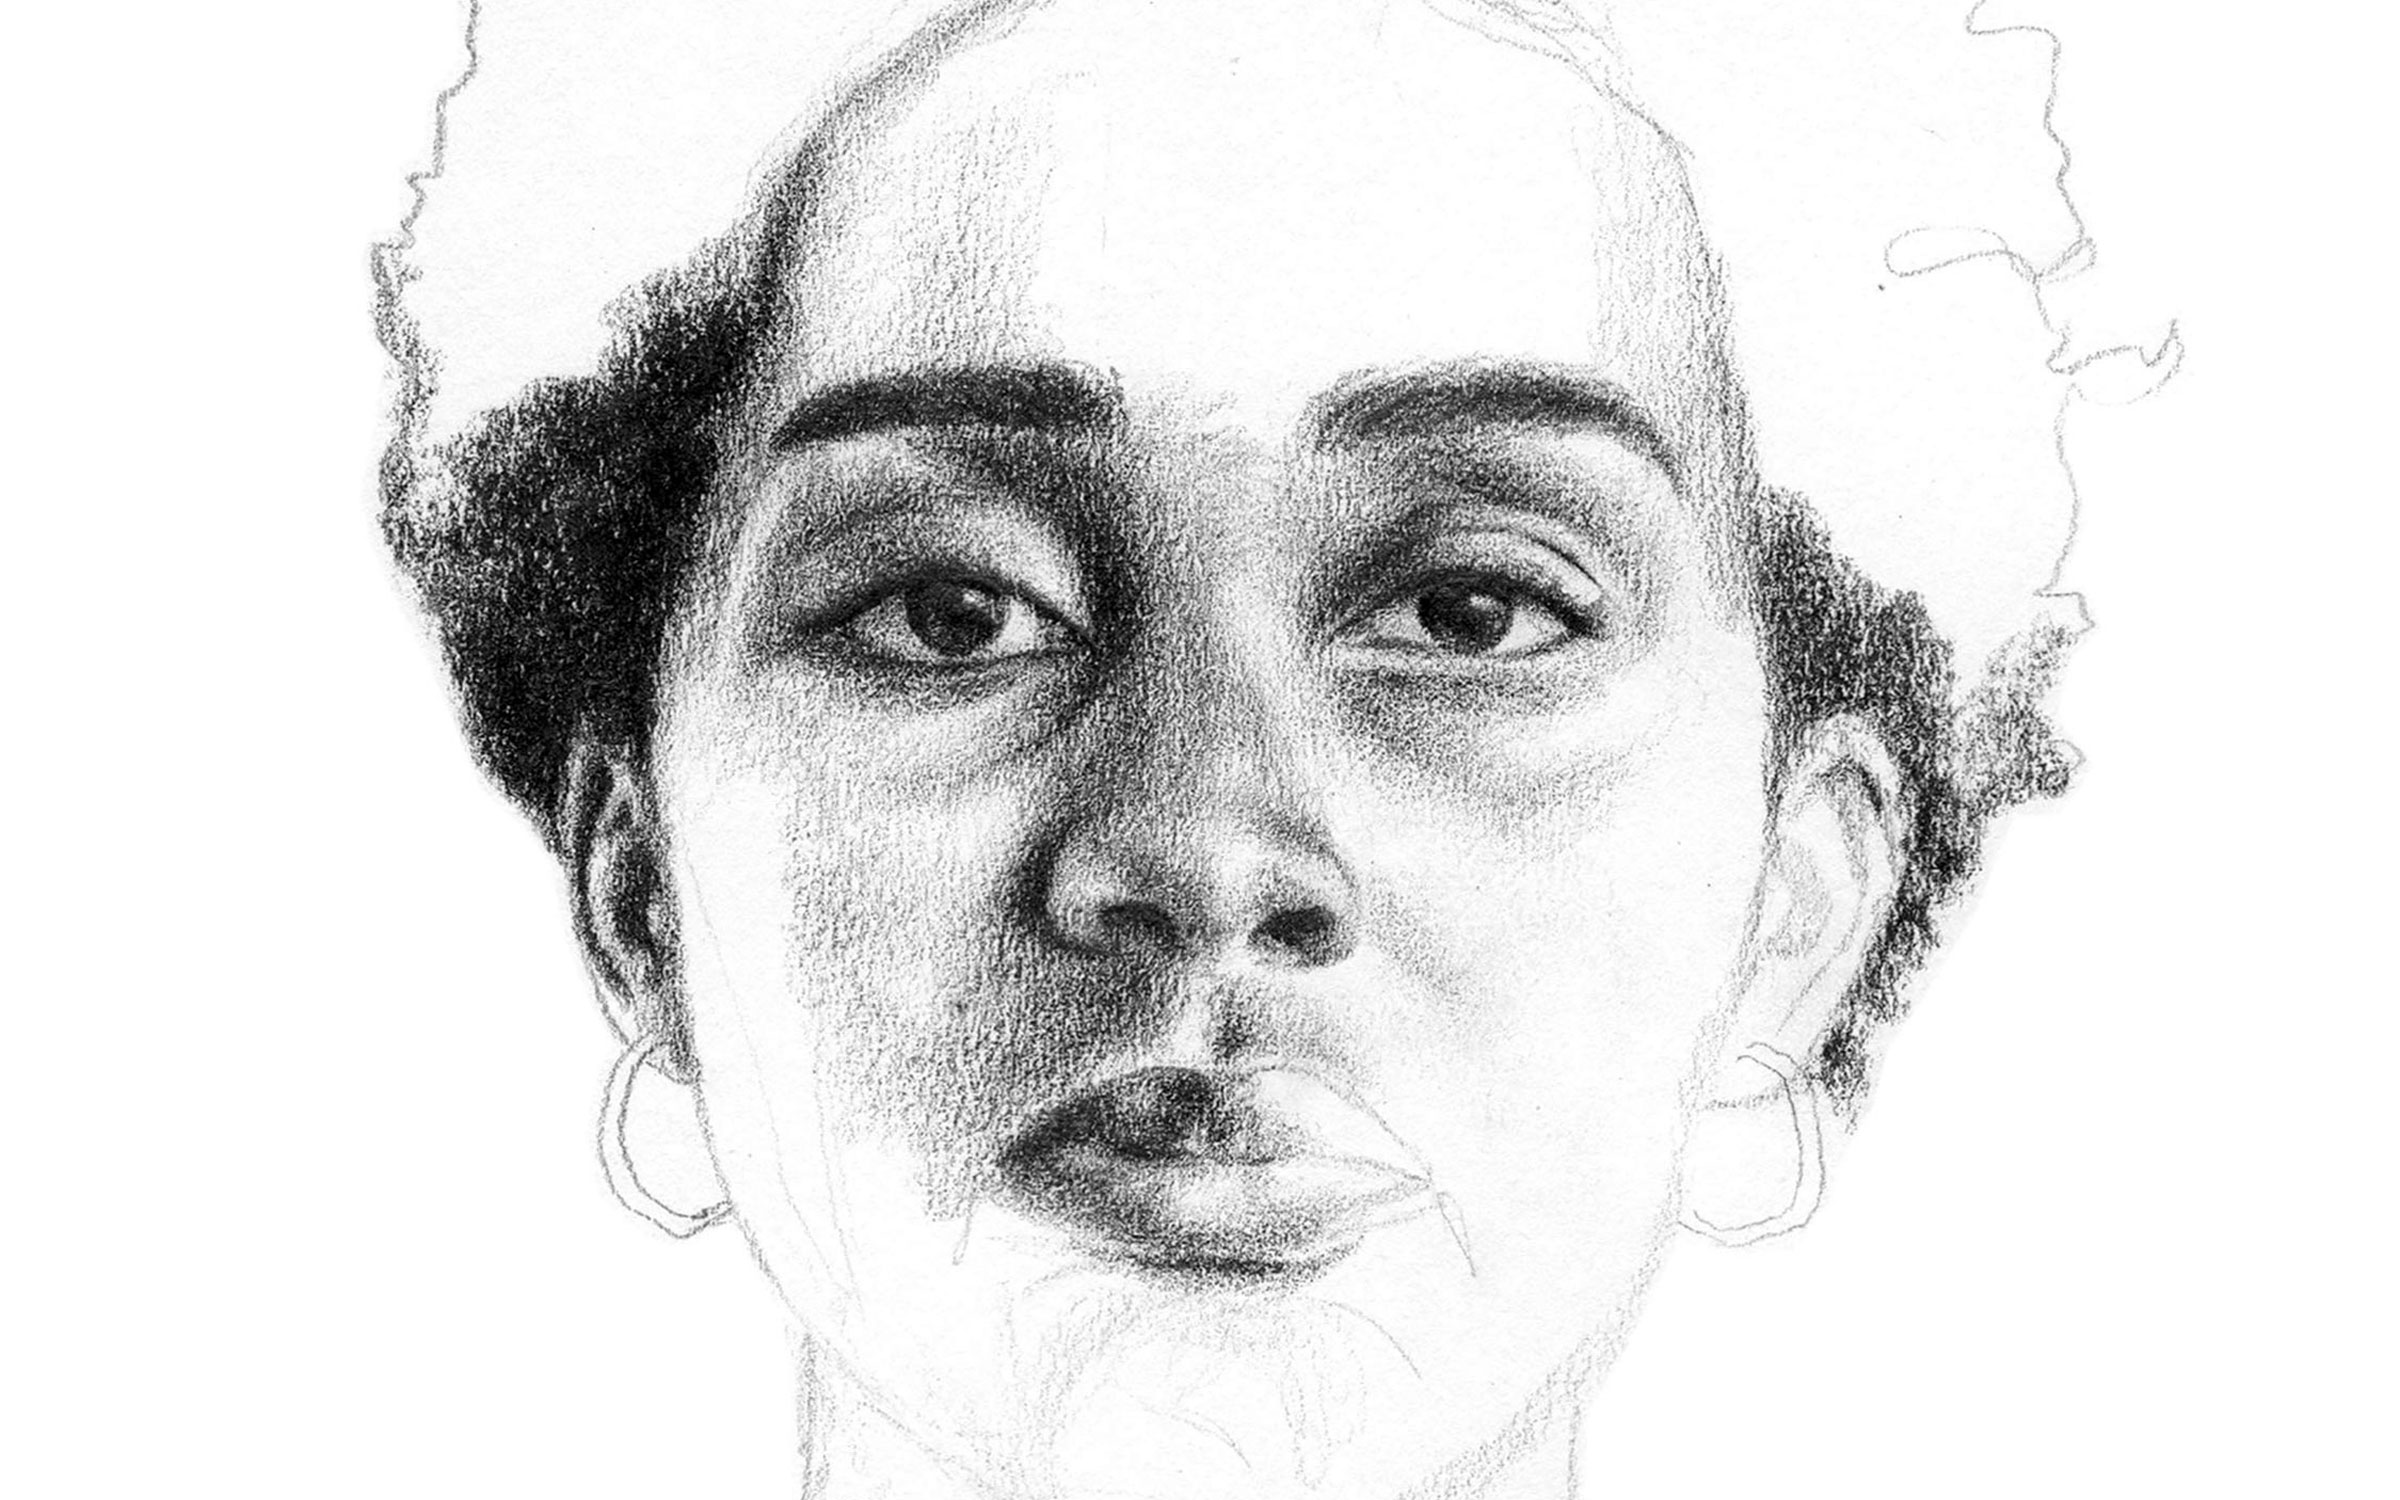 cropping of a black and white portrait sketch of a Black woman with short hair, her features are more detailed in the center of her face, while the top of her hair, chin, and neck are lightly outlined